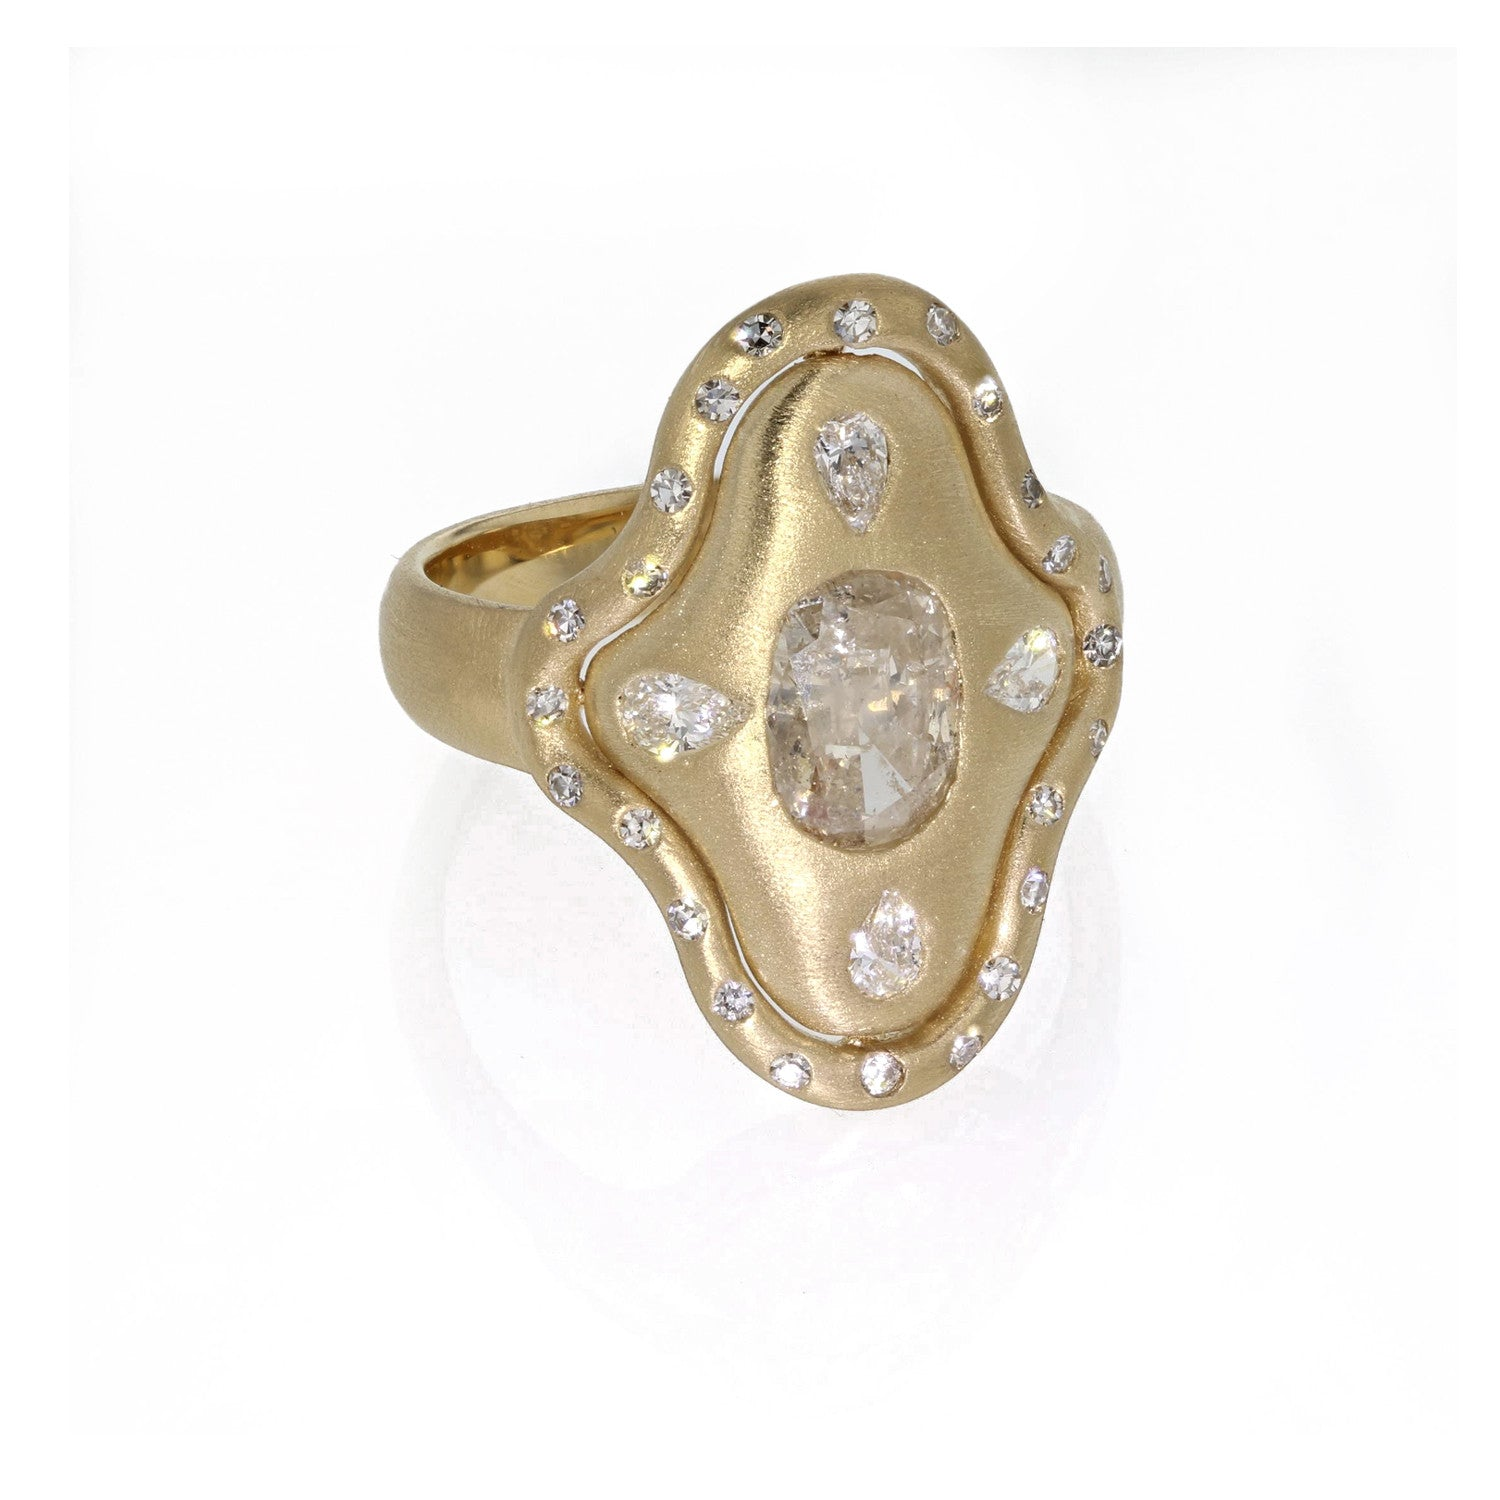 Shield Ring with white Diamonds - 18K yellow gold